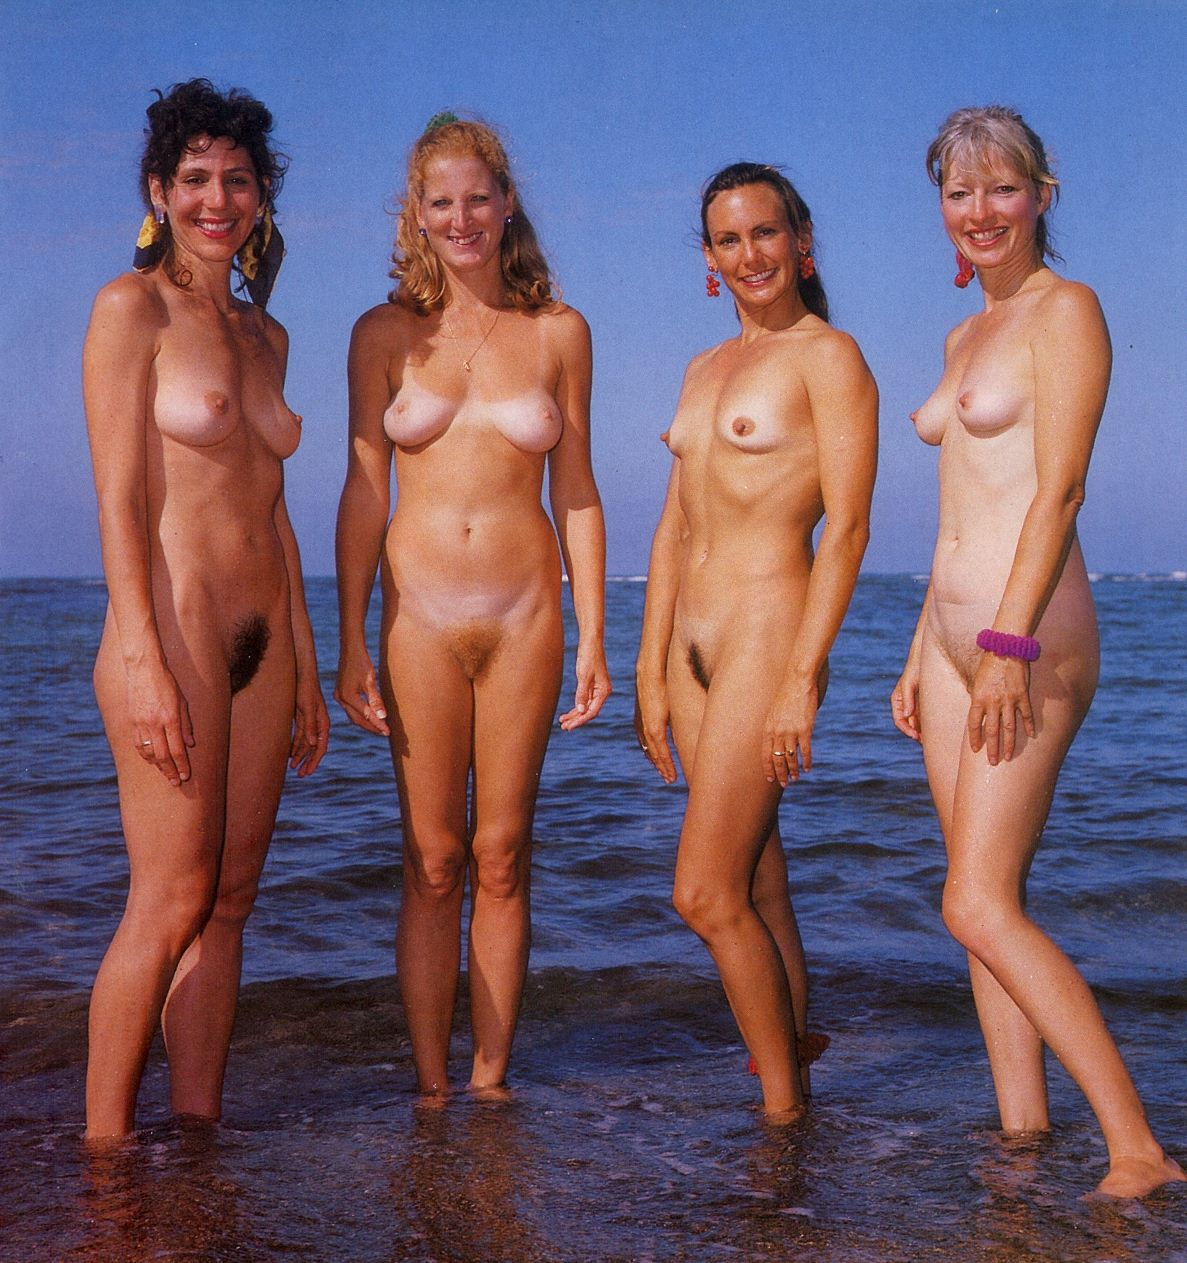 mature Nudism groups Nudist Photos of the Day 01-21-12